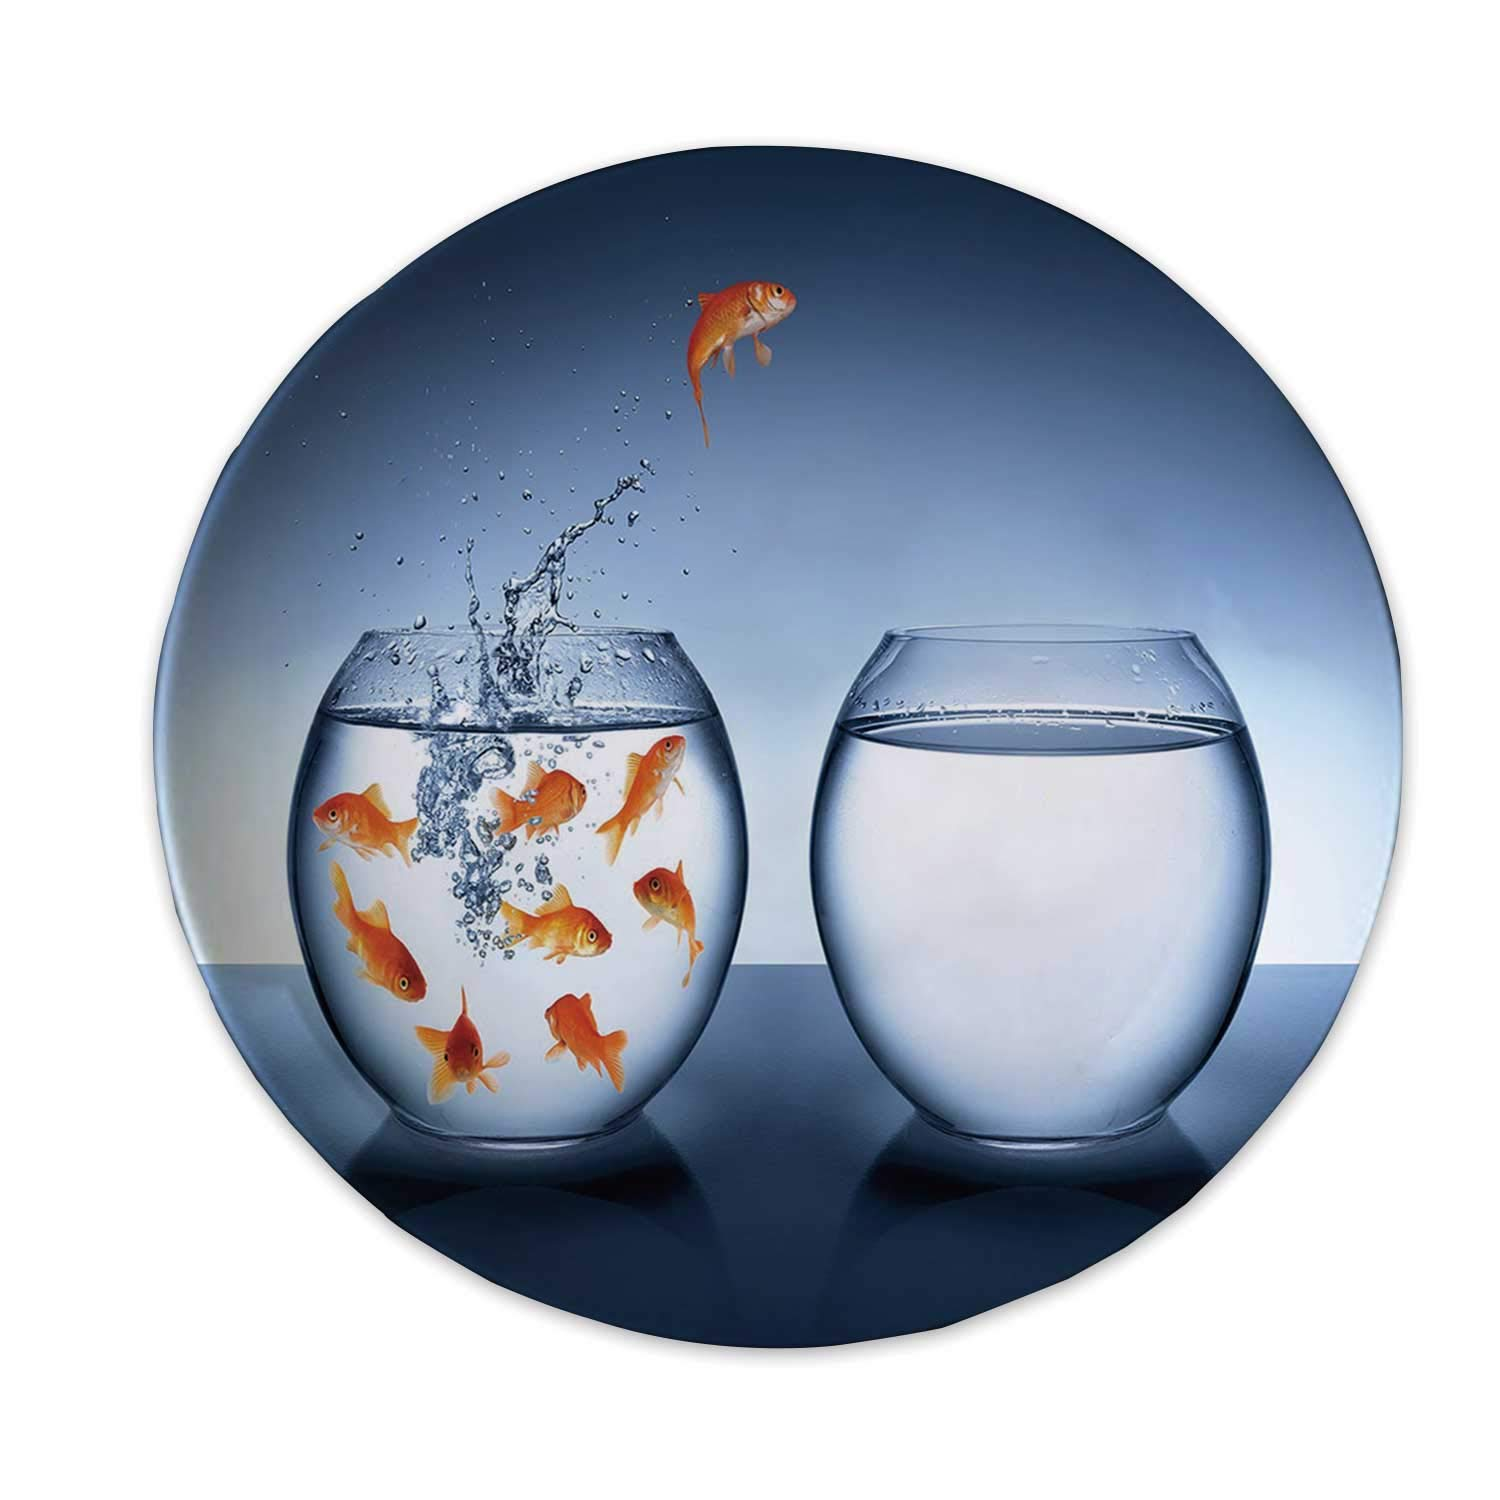 Aquarium Ceramic Decorative Plate,Little Brave Goldfish Jumping One Fishbowl to Another Courage Improvement Decorative for Home Decorative,8 inch